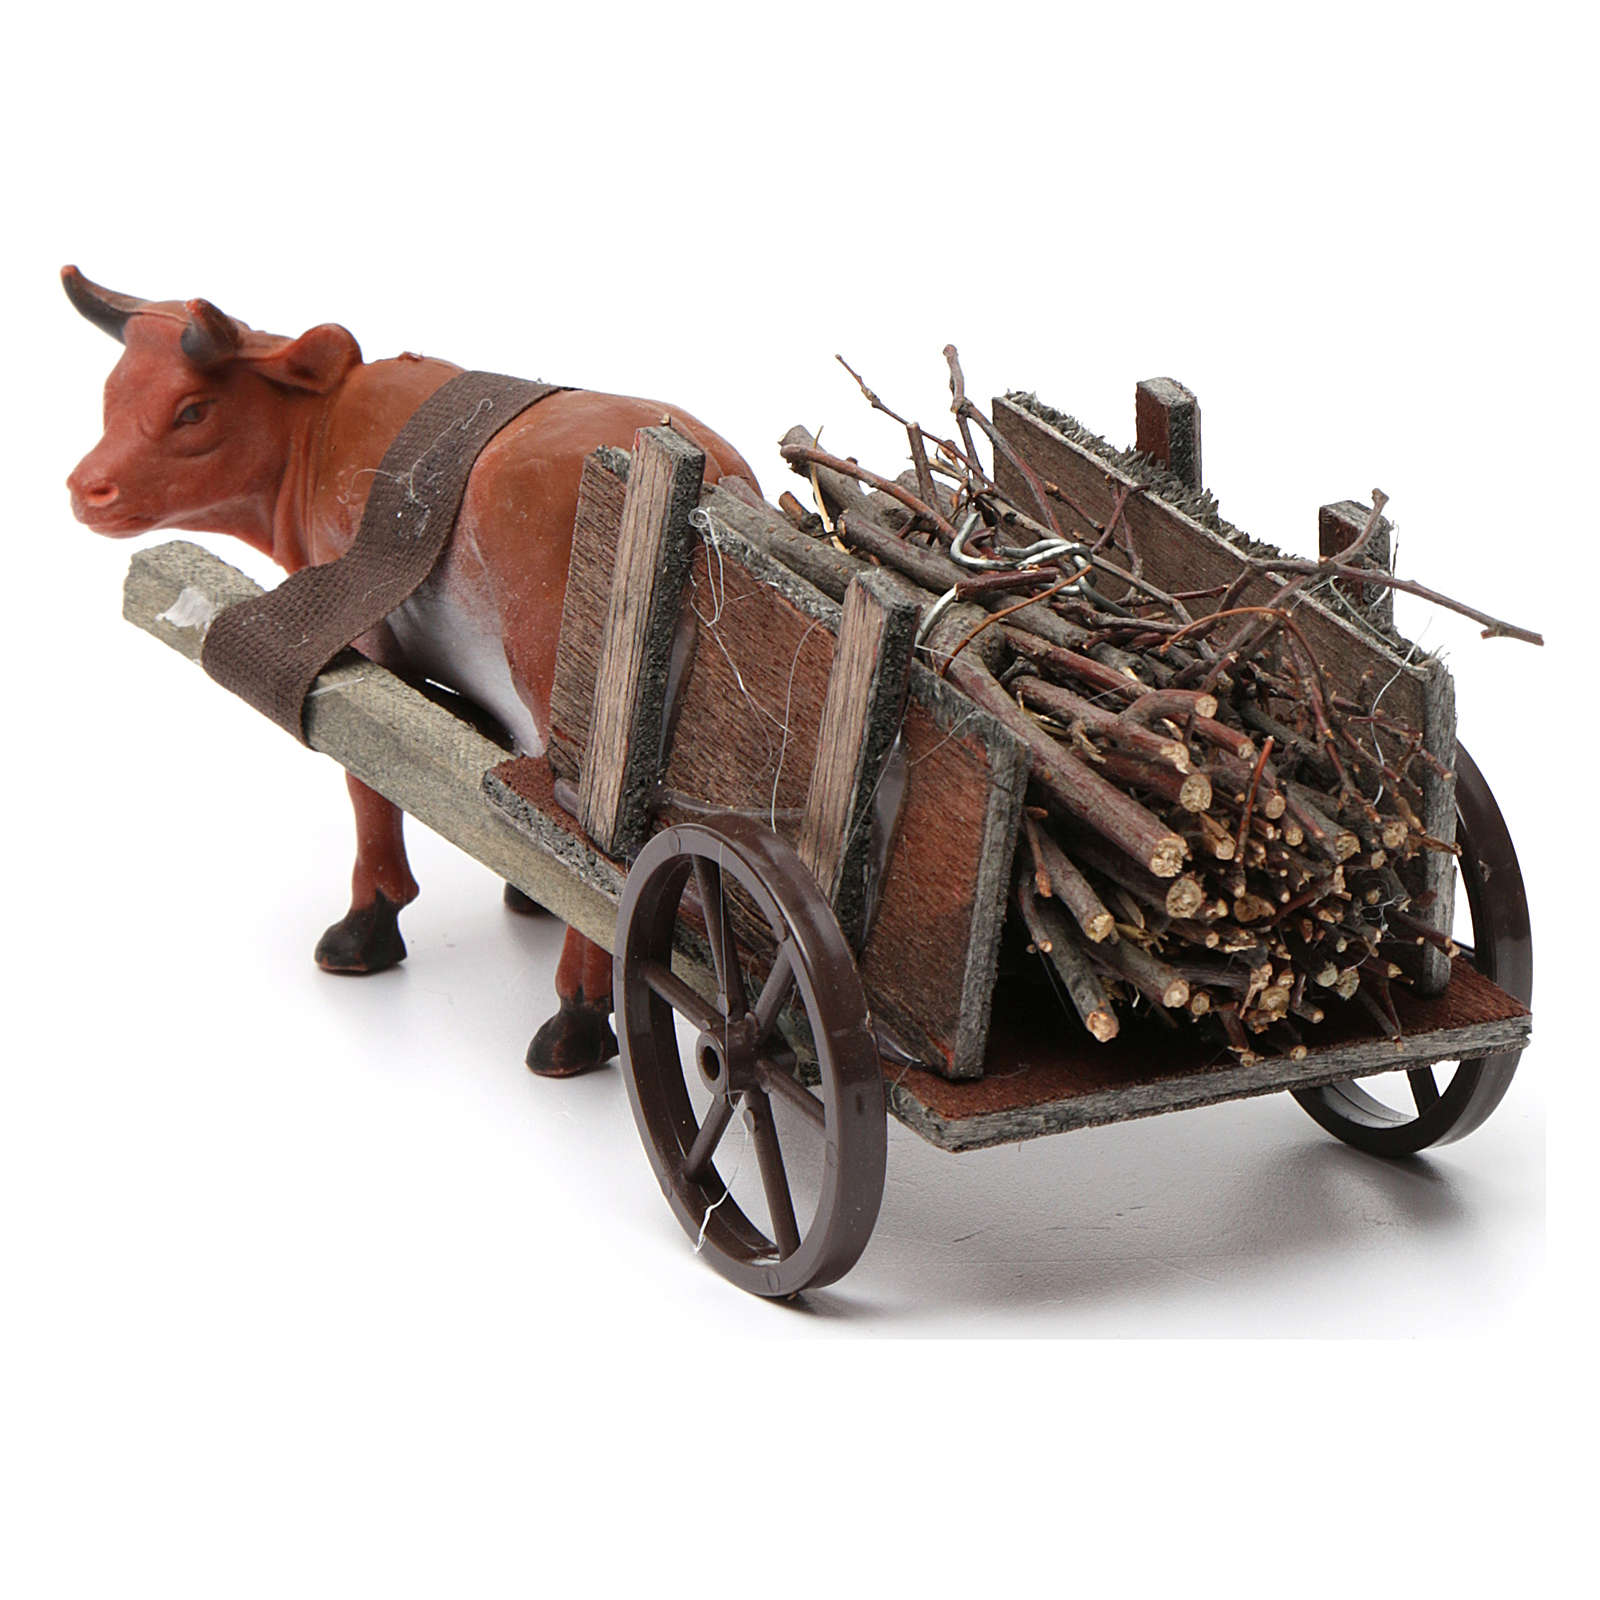 Cart with brown ox 10x20x10 cm for Nativity Scene 8 cm 3